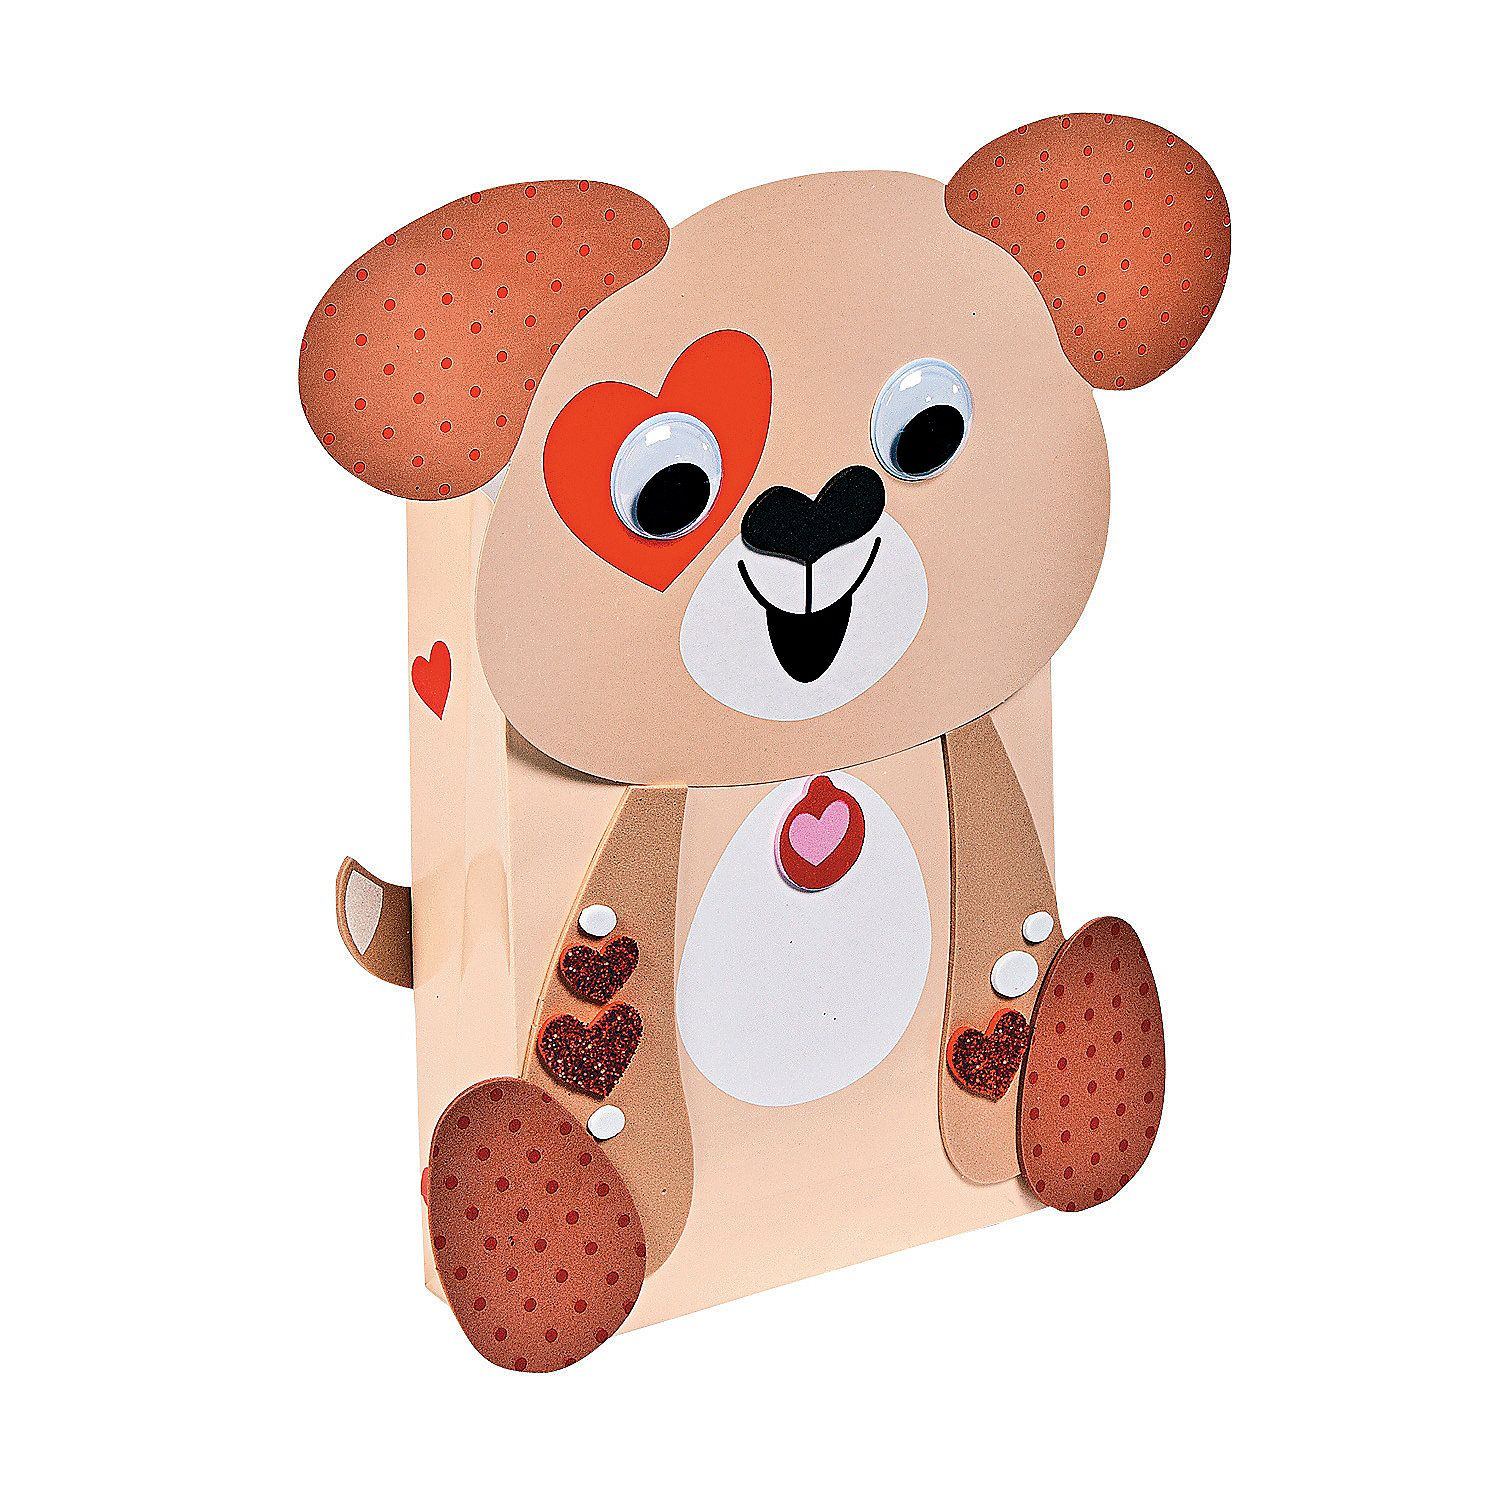 Craft kits for 4 year olds - Puppy Valentine Card Holders Craft Kit Valentine